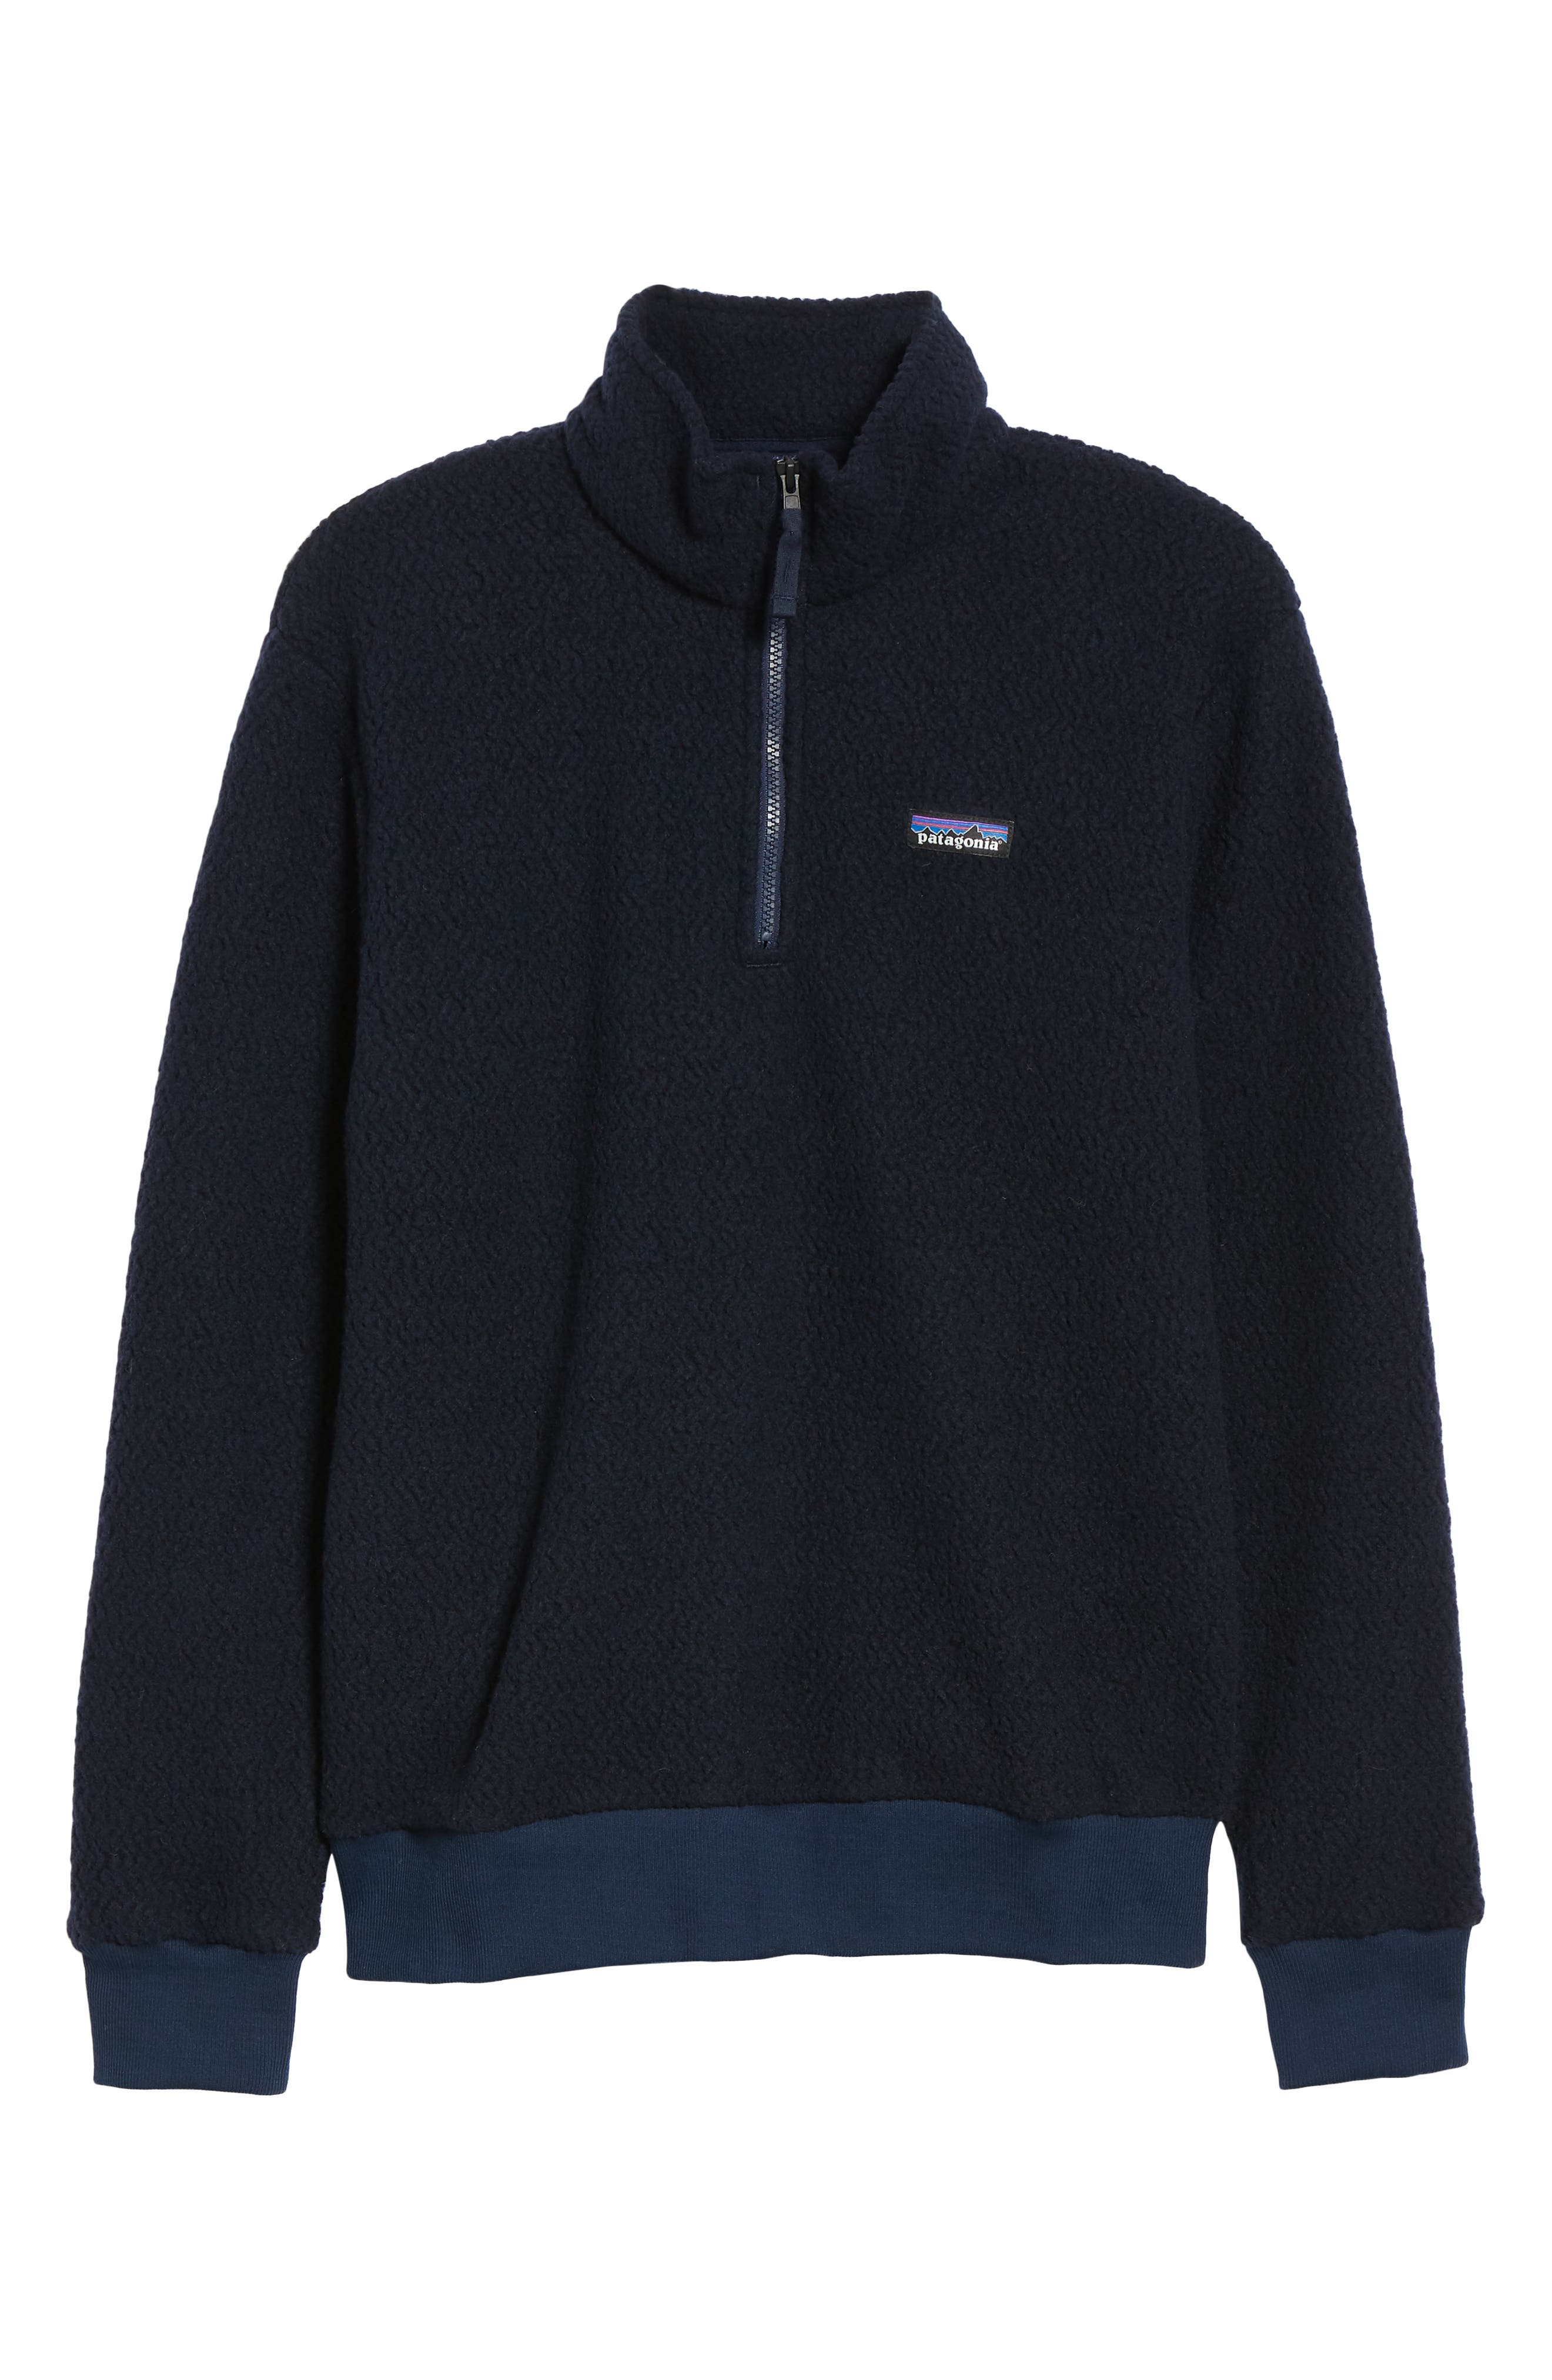 PATAGONIA,                             Woolyester Fleece Quarter Zip Pullover,                             Alternate thumbnail 6, color,                             CLASSIC NAVY